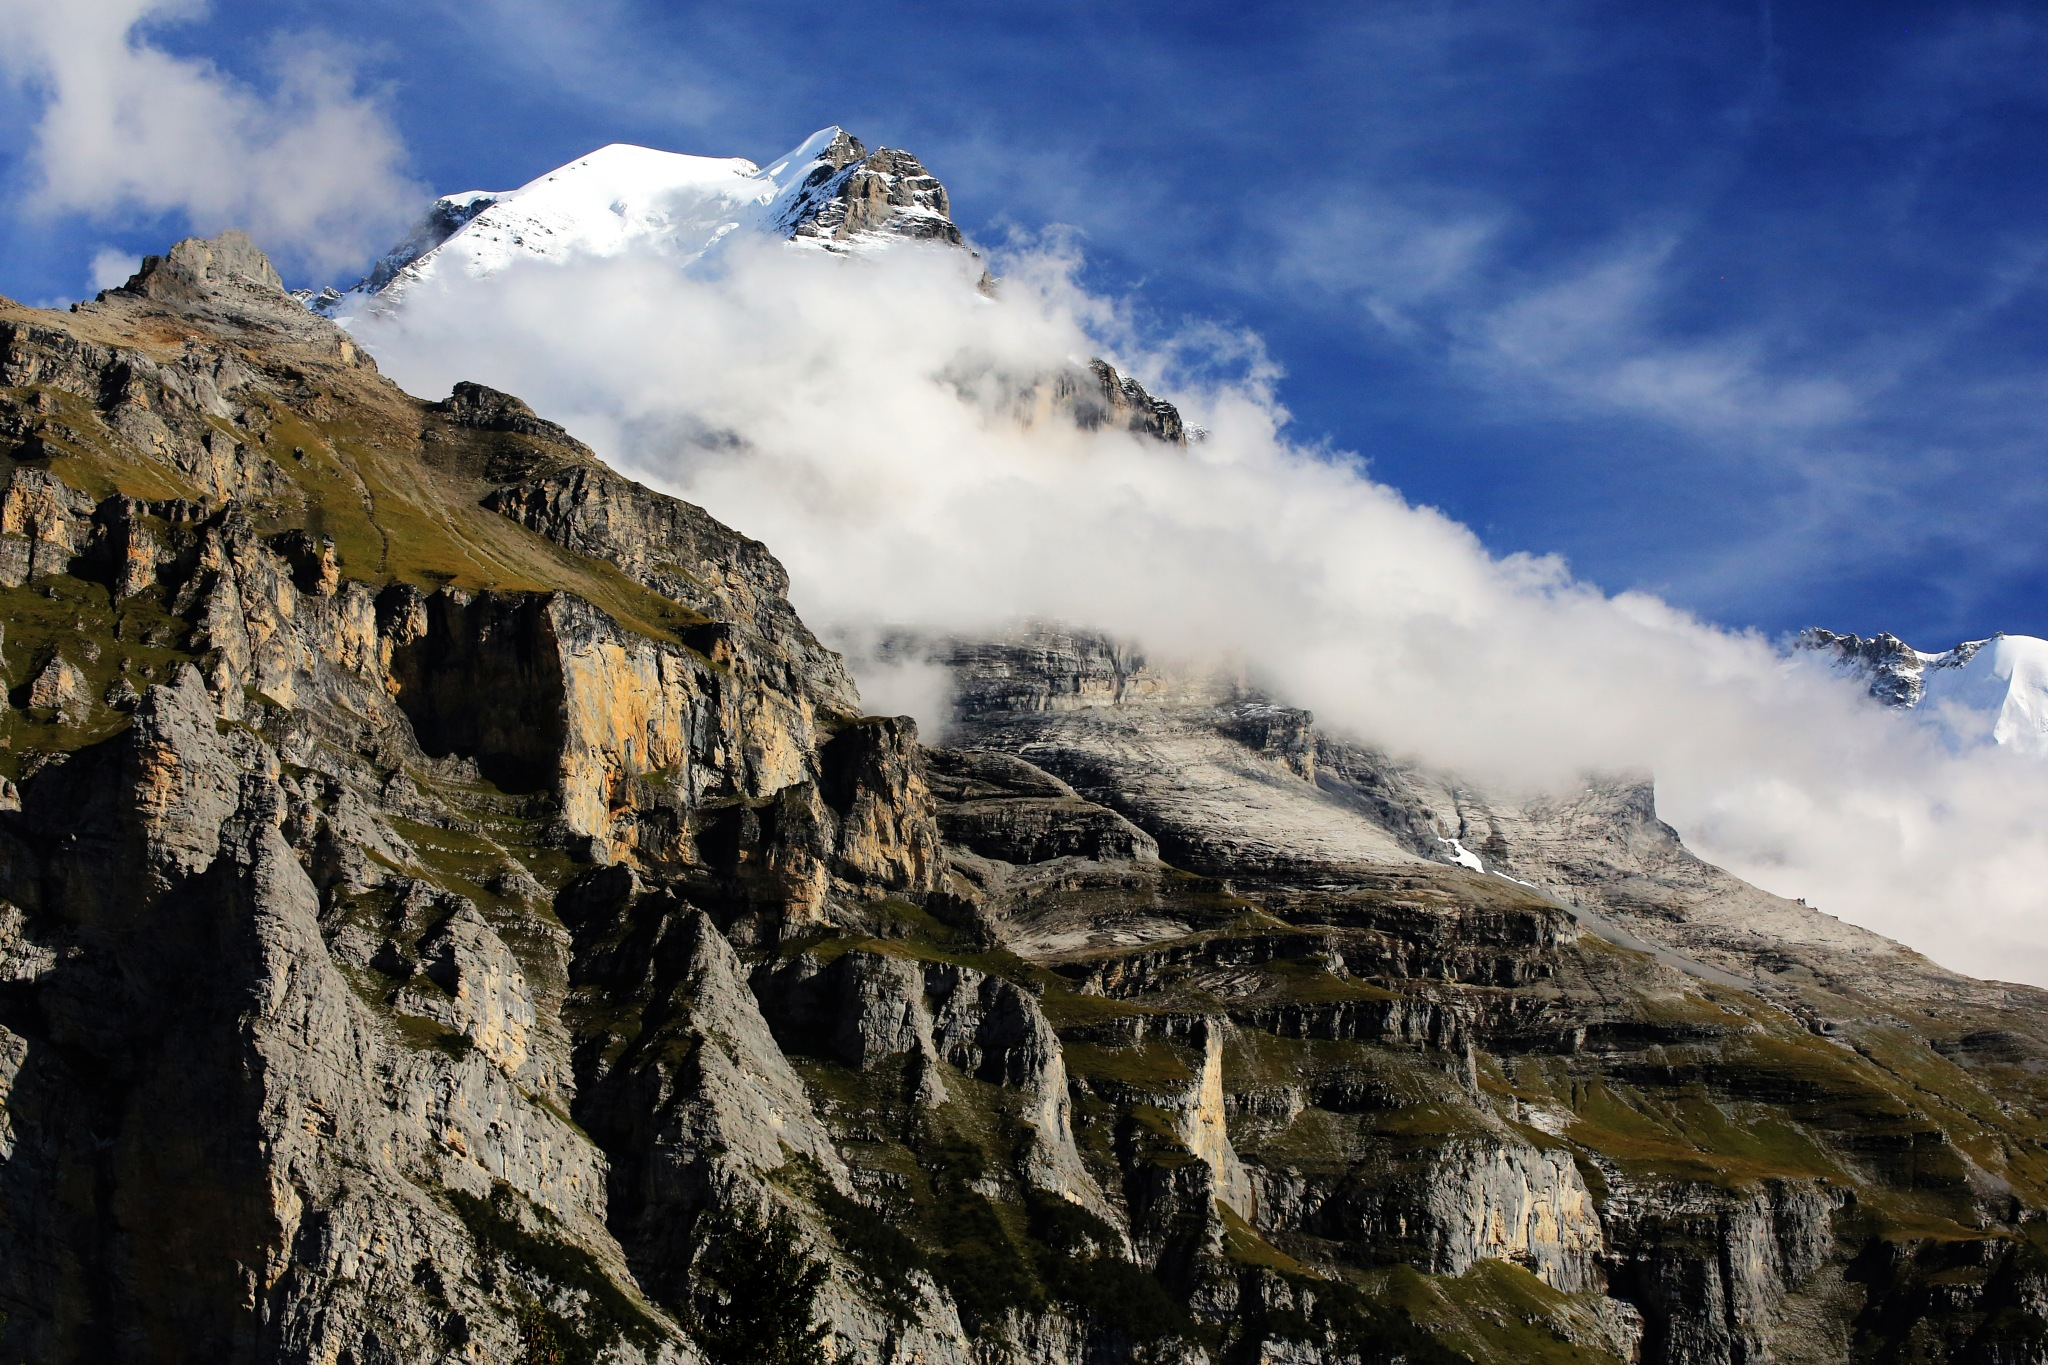 Touching the clouds by portillo45